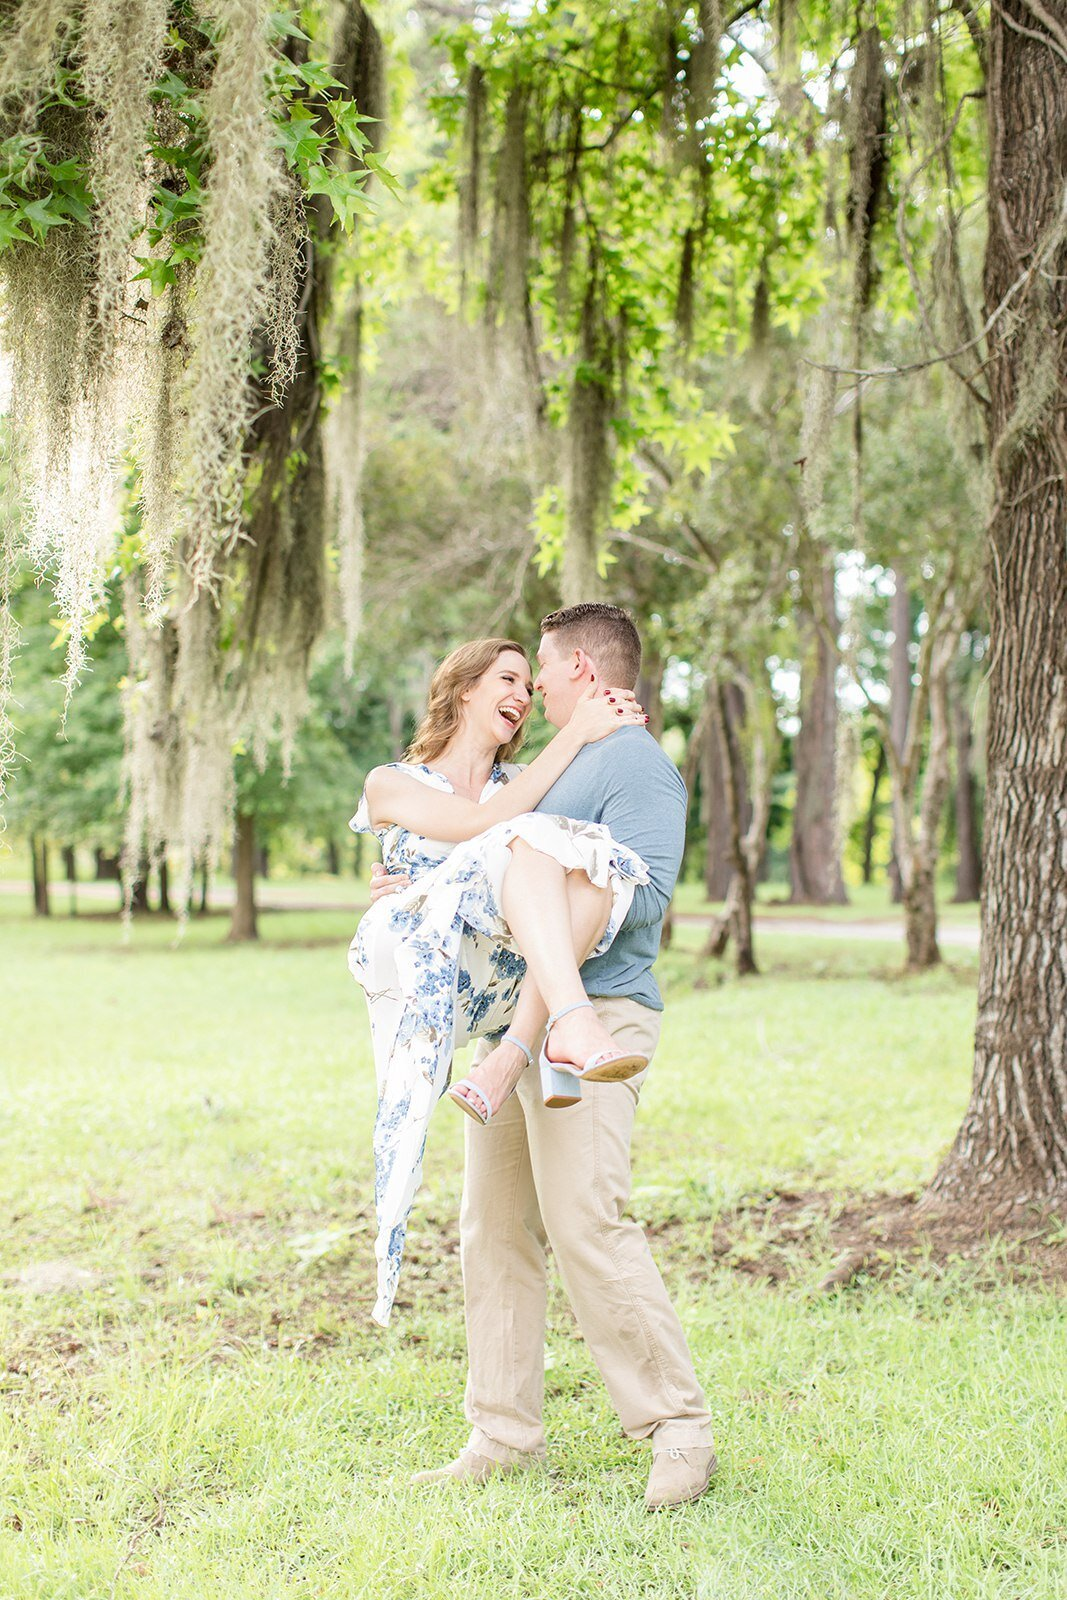 Birmingham, Alabama Wedding Photographers - Katie & Alec Photography Engagement Galleries 47